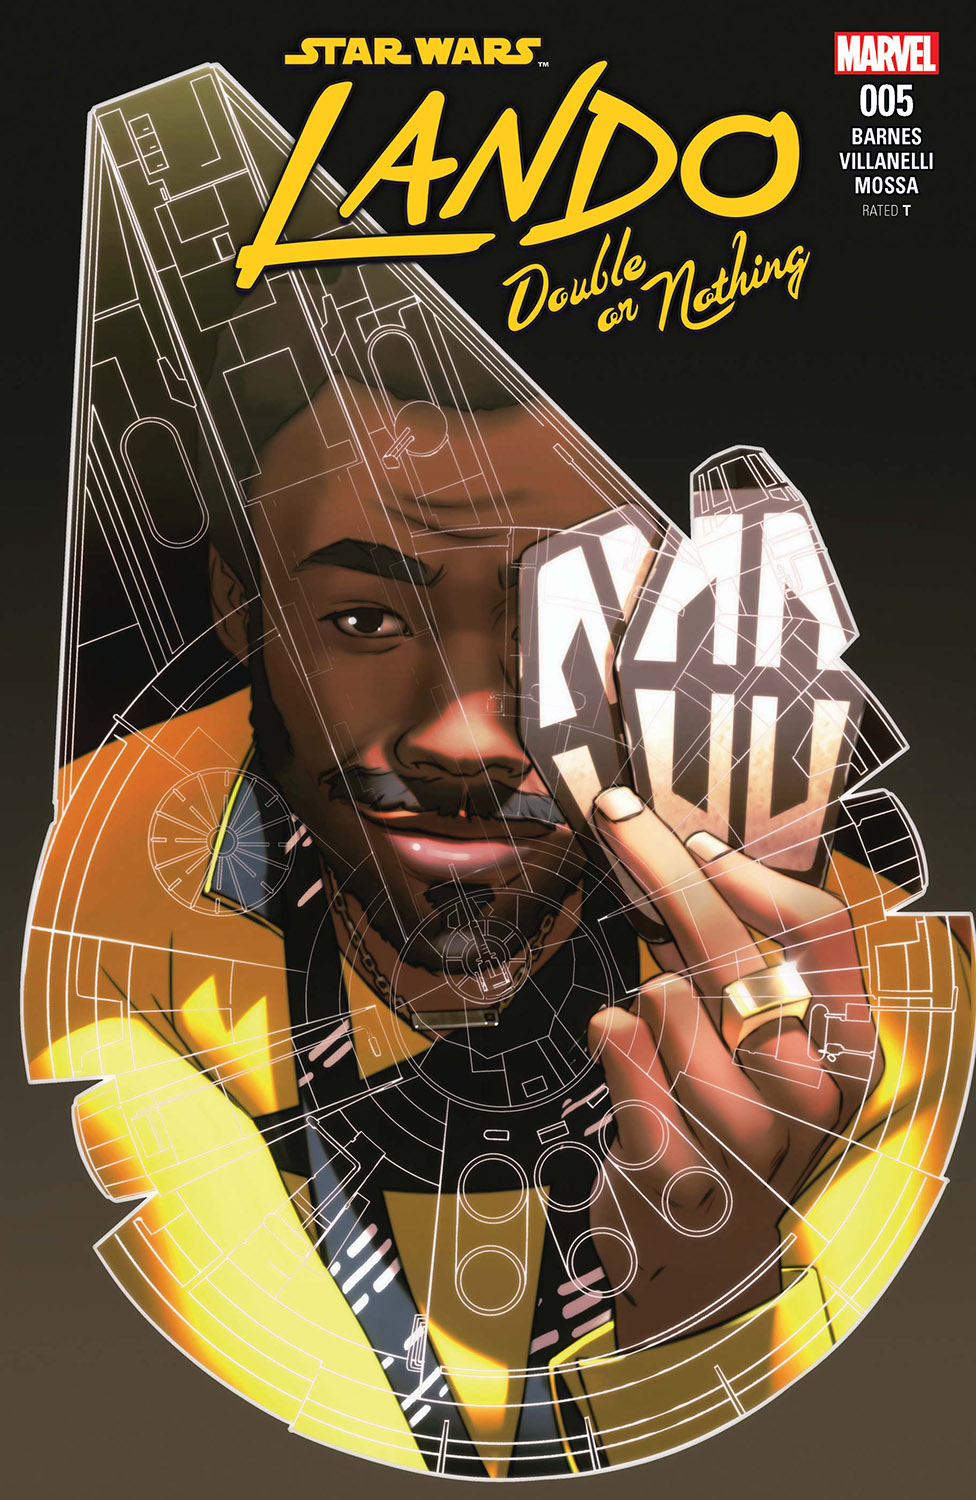 Star Wars: Lando - Double or Nothing (2018) #5